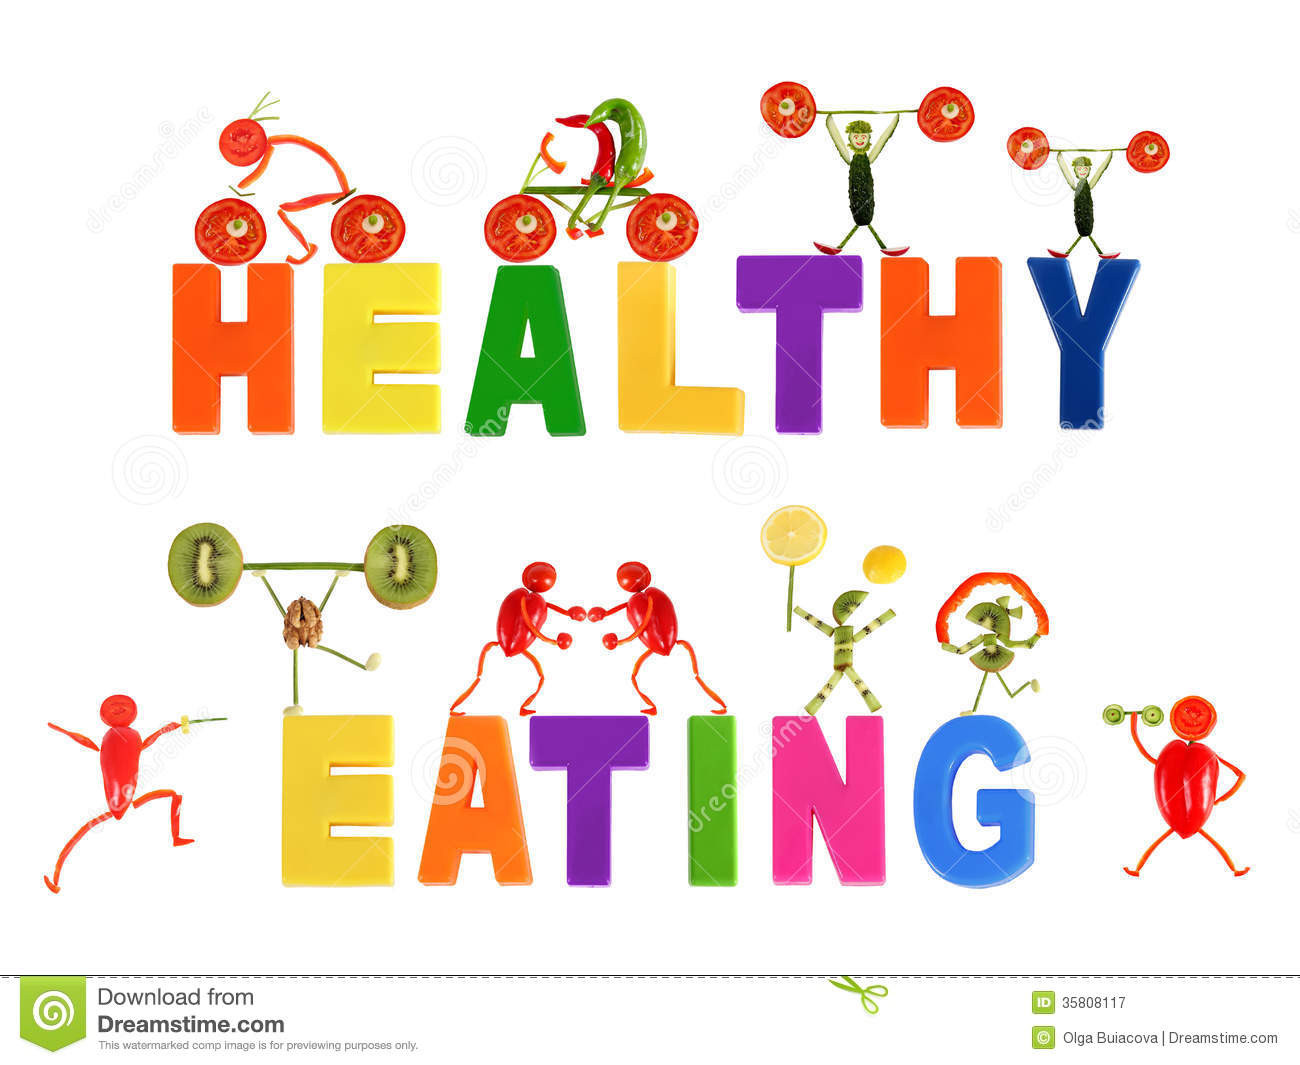 . hdclipartall.com Healthy Eating Clipart Throughout Food hdclipartall.com